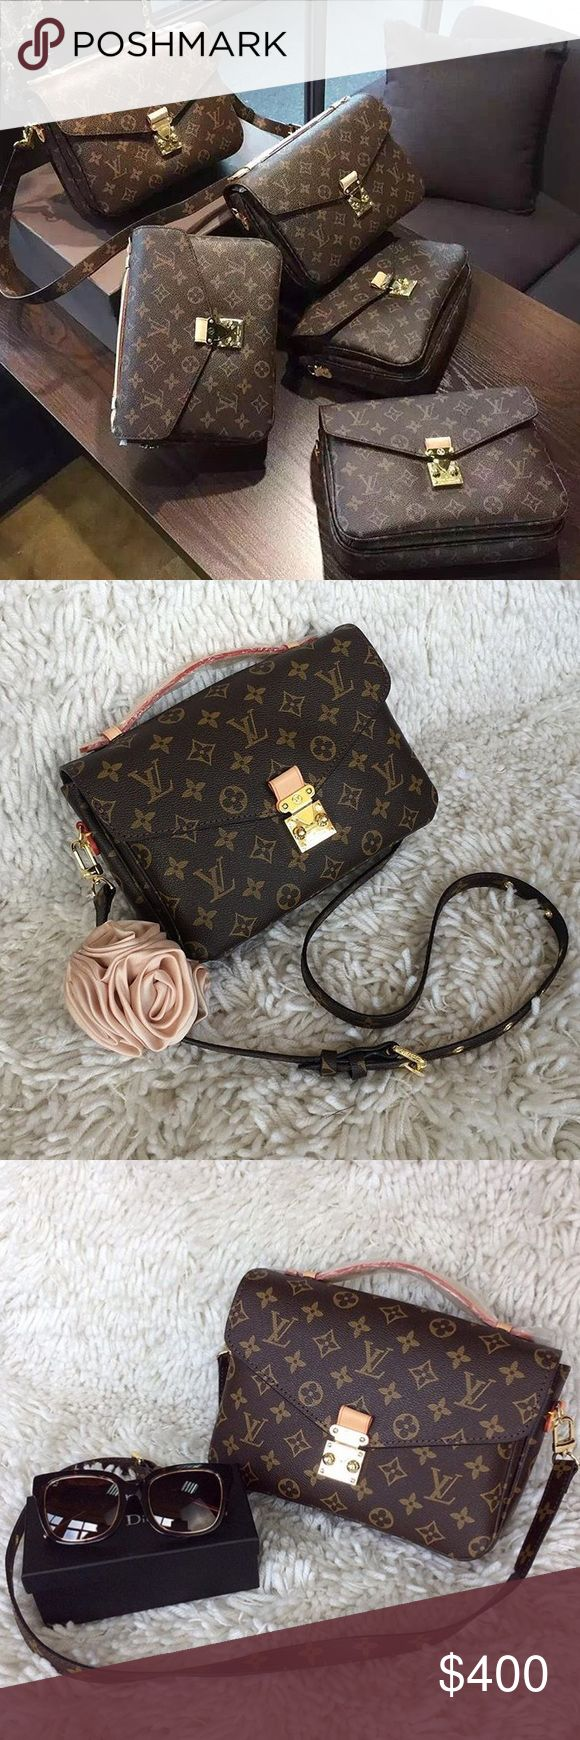 Louis Vuitton Pochette Metis ️️ or Venmo only  {email to order: adeliakas at gmail dot com} Louis Vuitton Bags Crossbody Bags